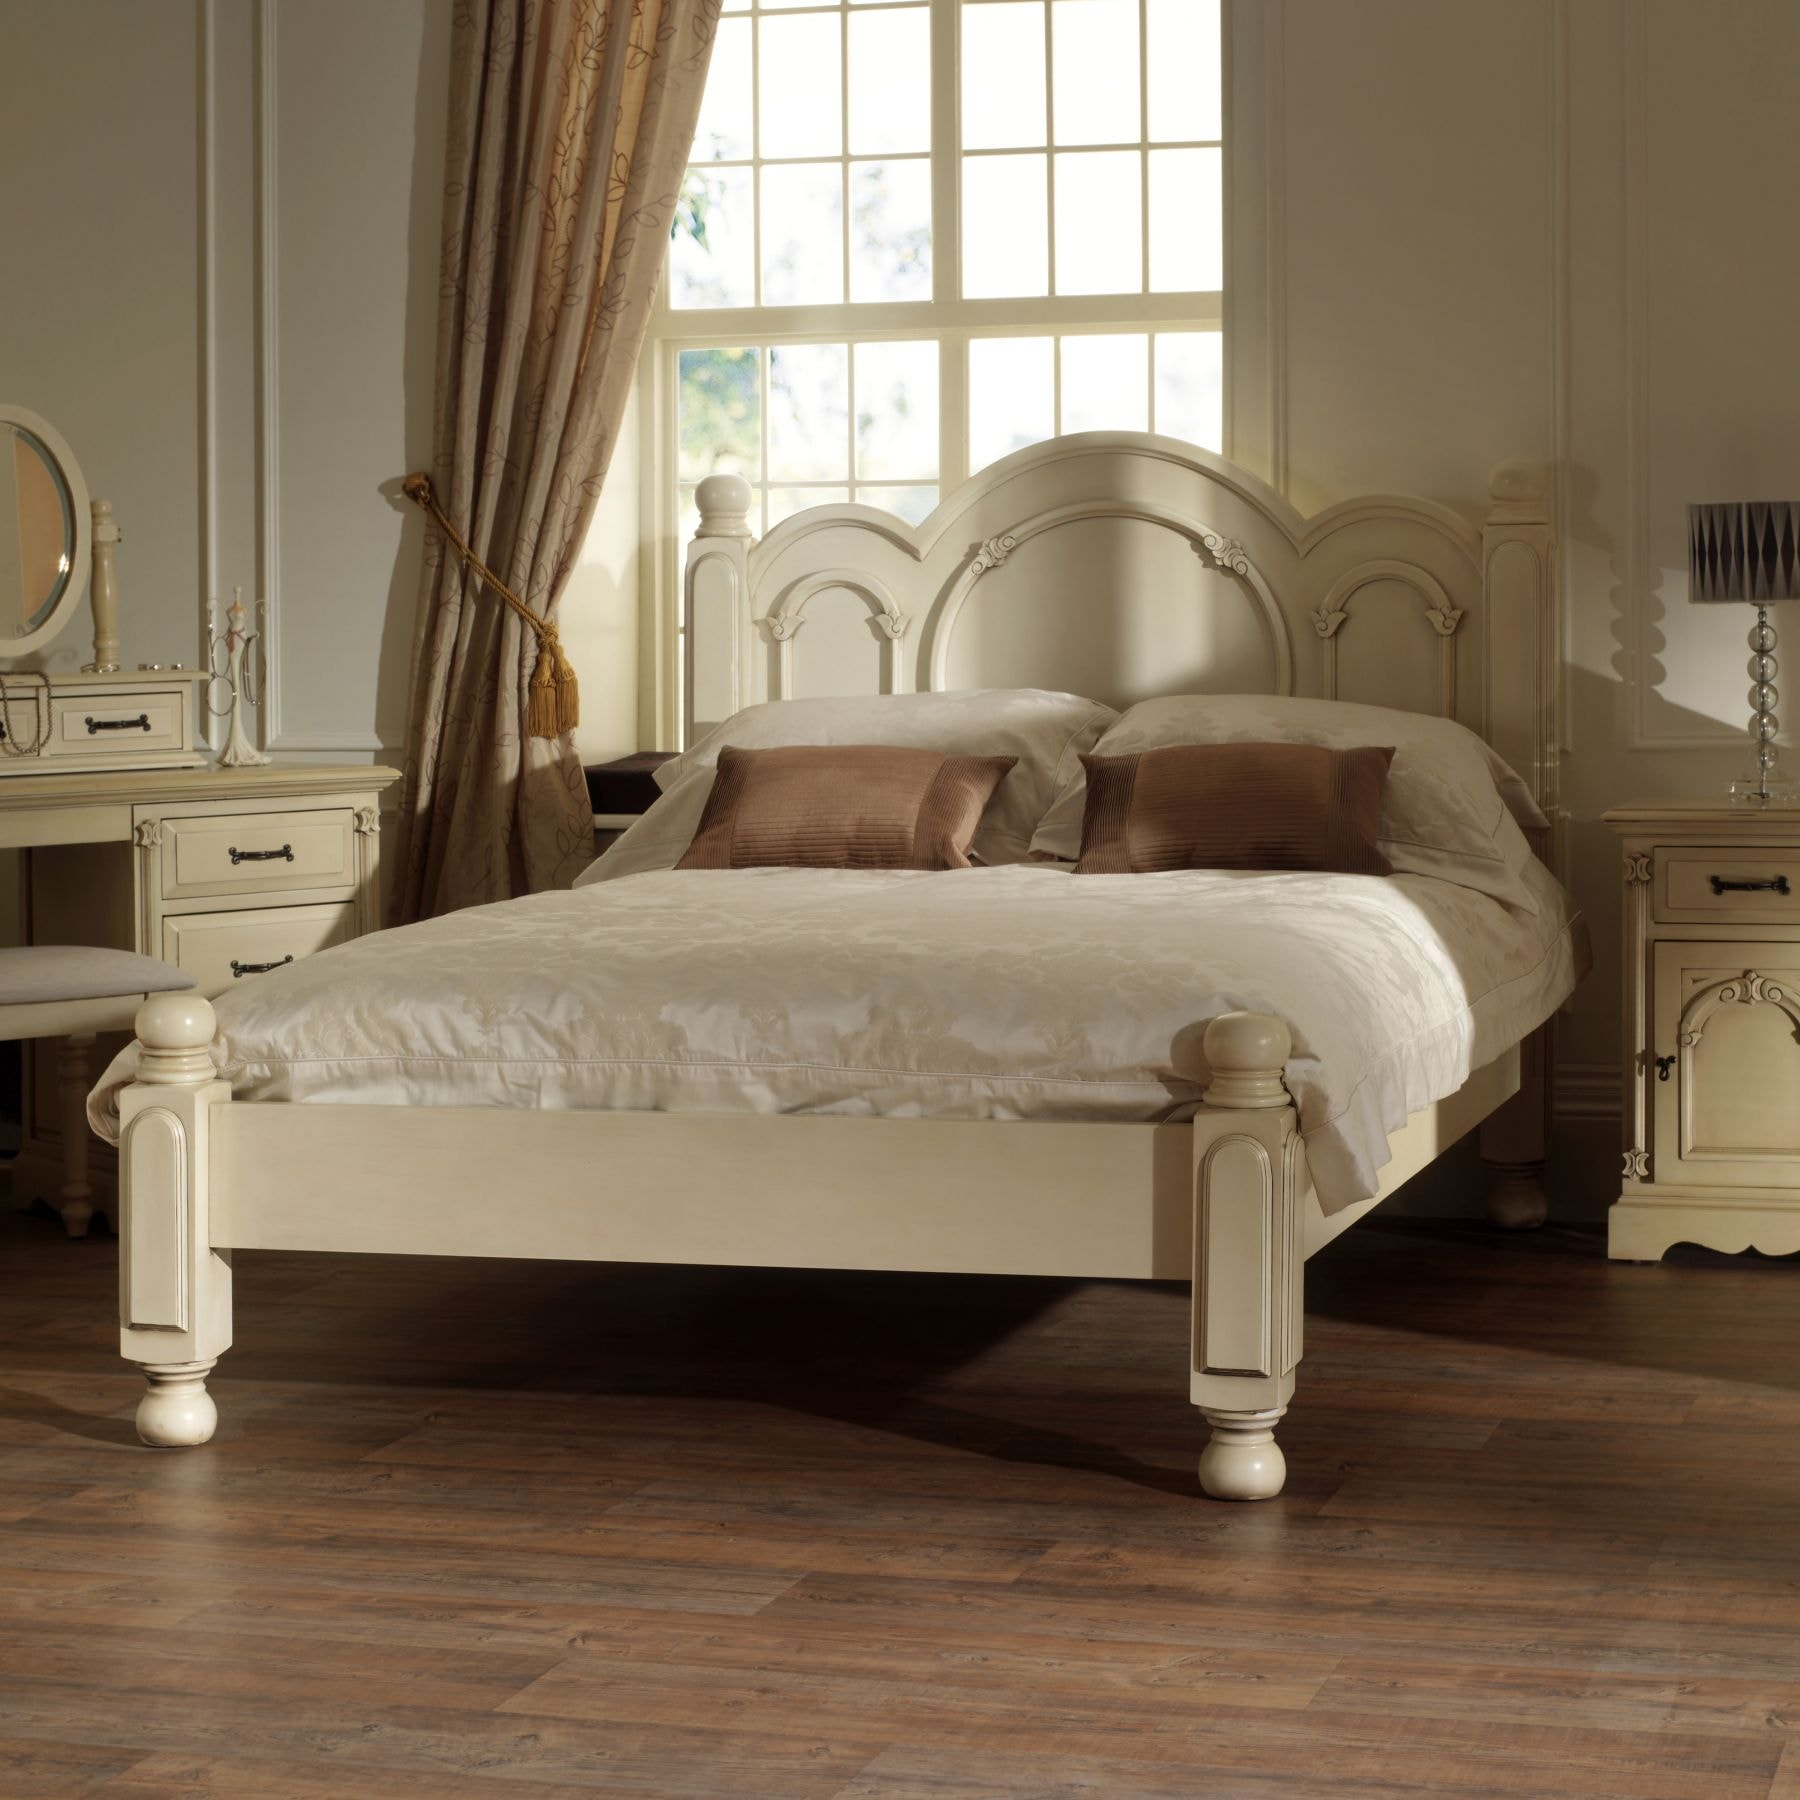 French furniture uk - Victorian Collection Bundle 1